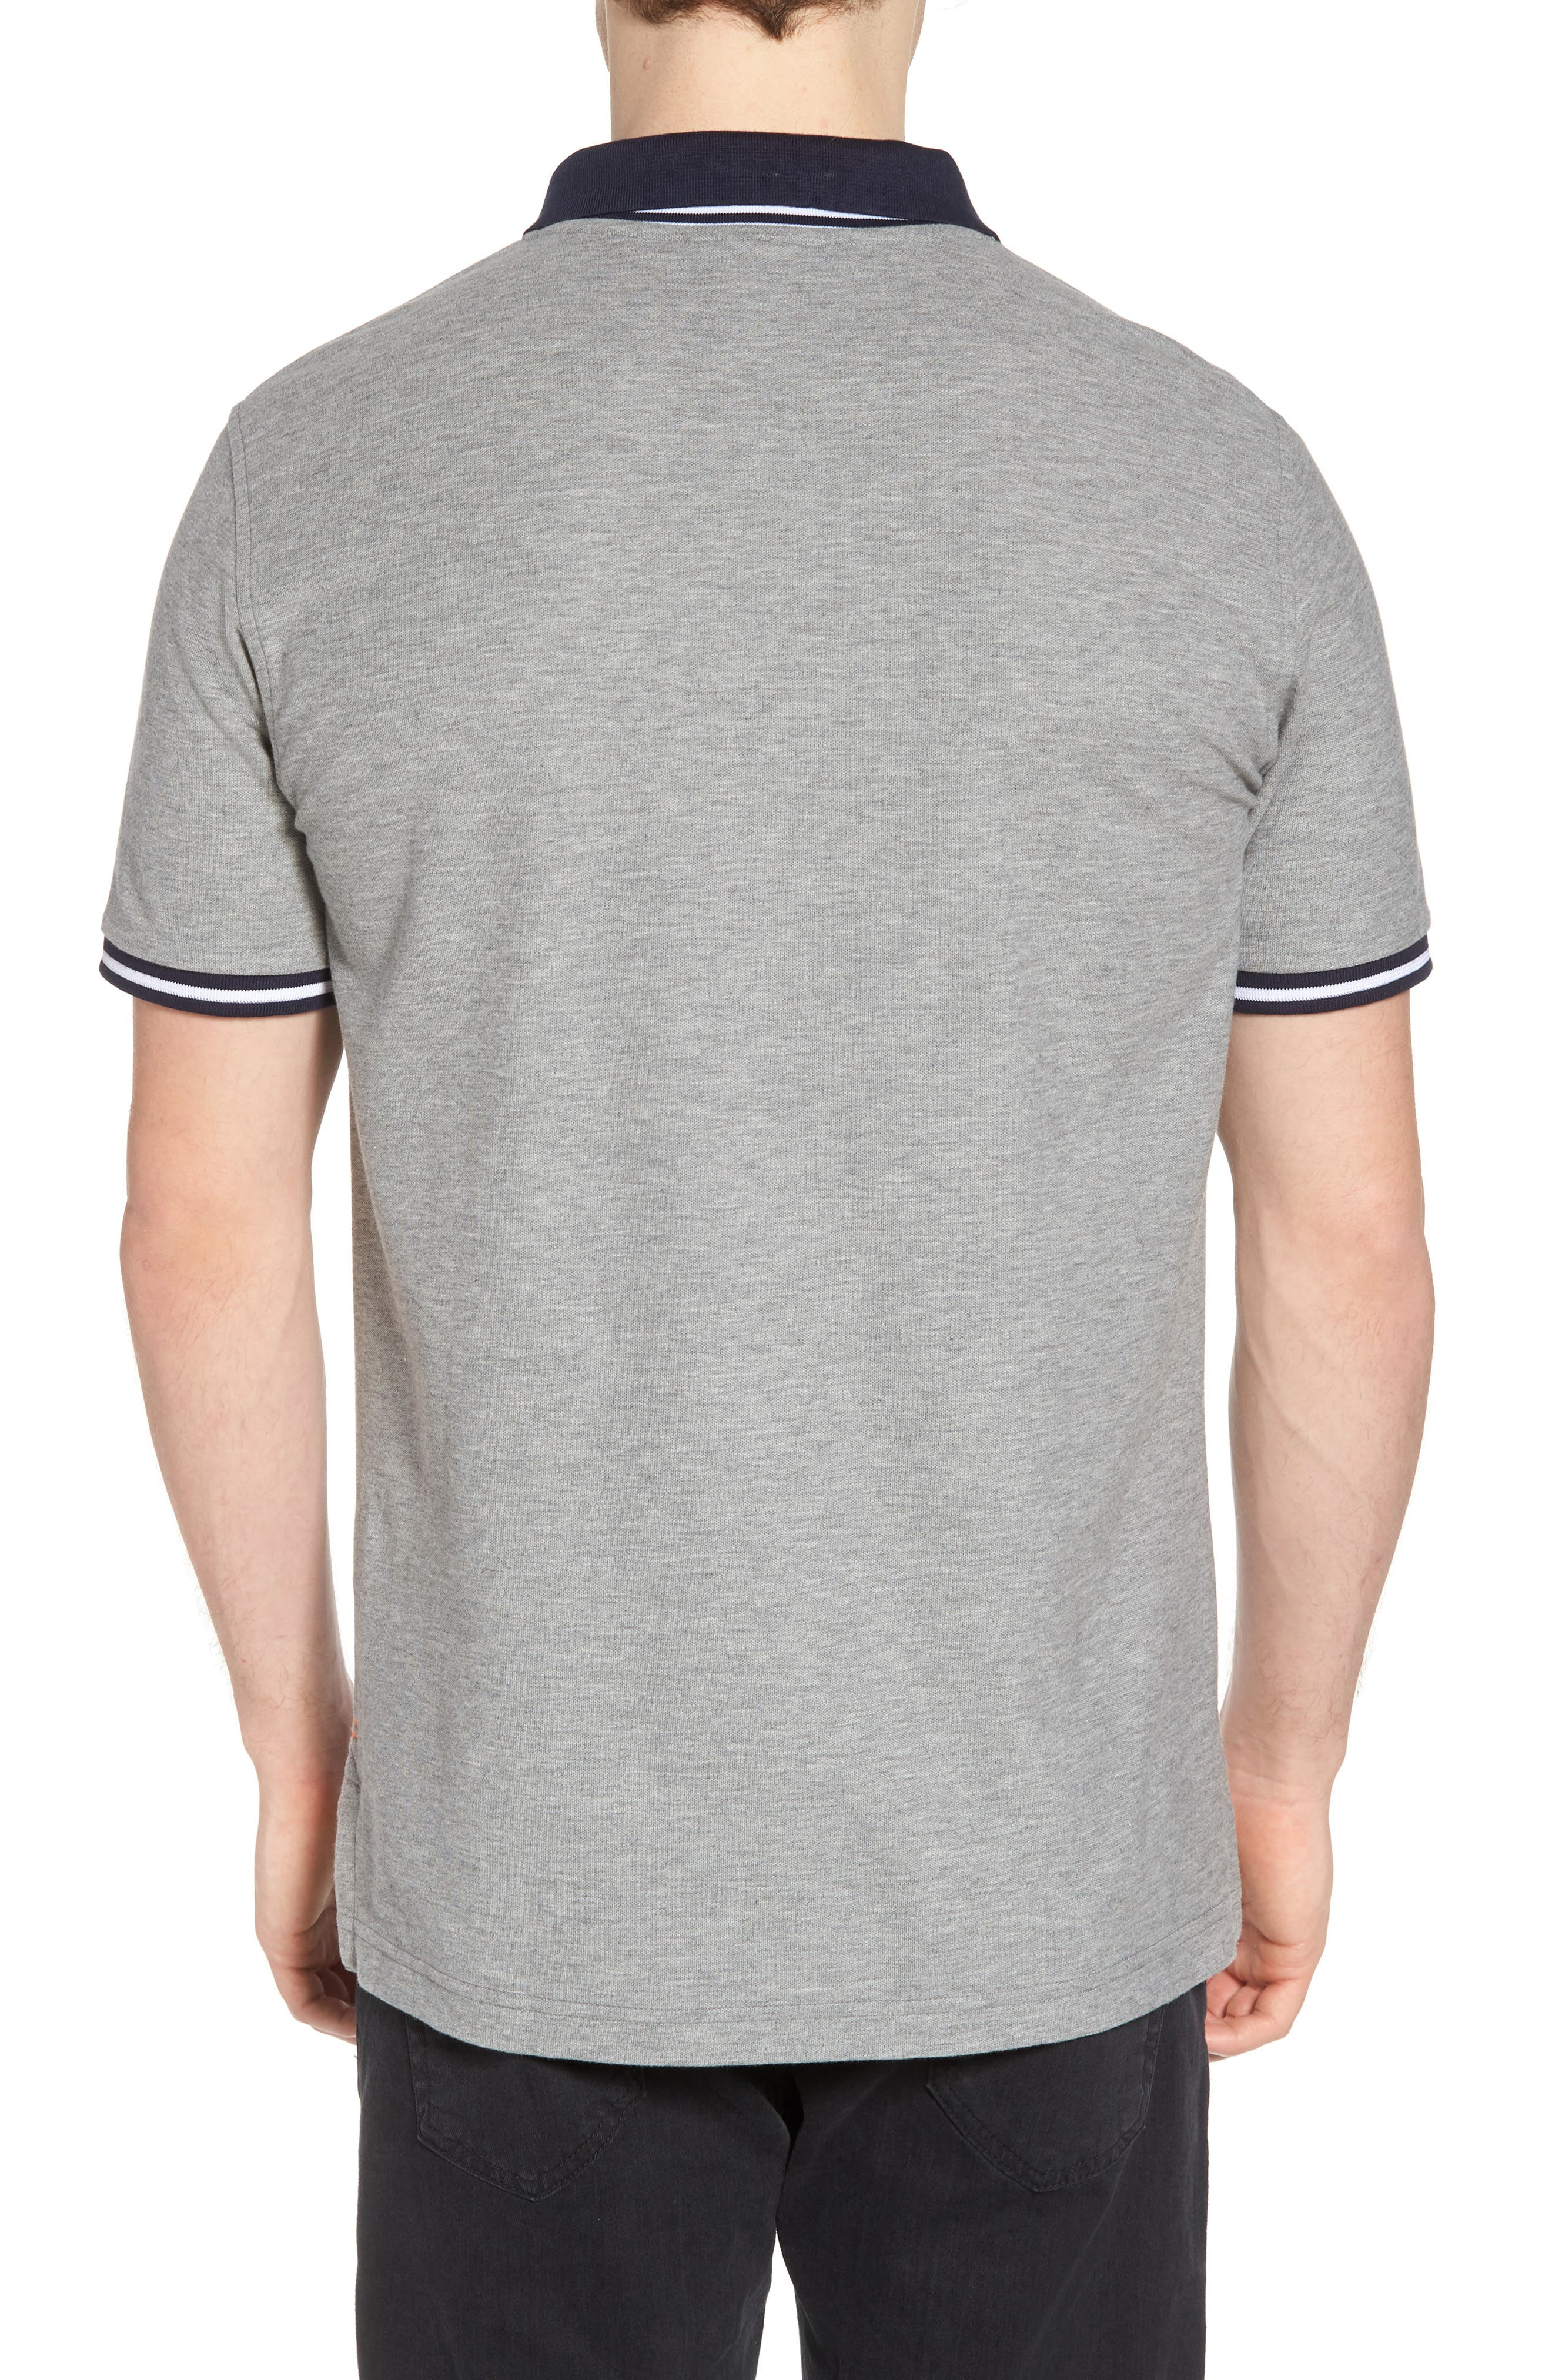 St. Ives Polo,                             Alternate thumbnail 2, color,                             Heather Grey